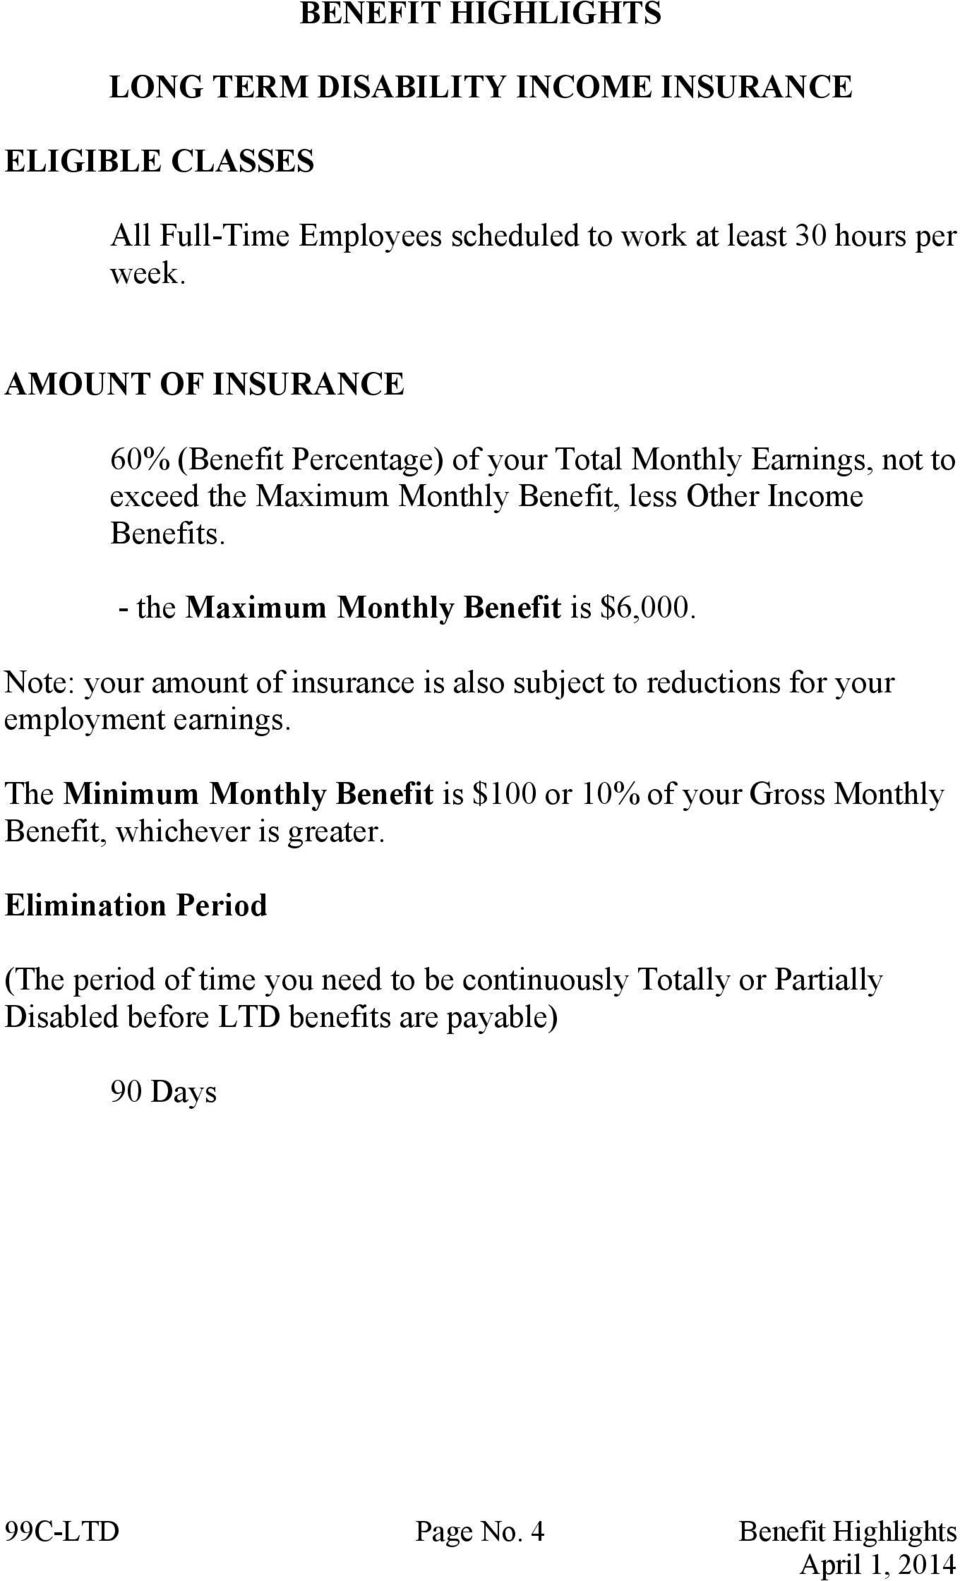 - the Maximum Monthly Benefit is $6,000. Note: your amount of insurance is also subject to reductions for your employment earnings.